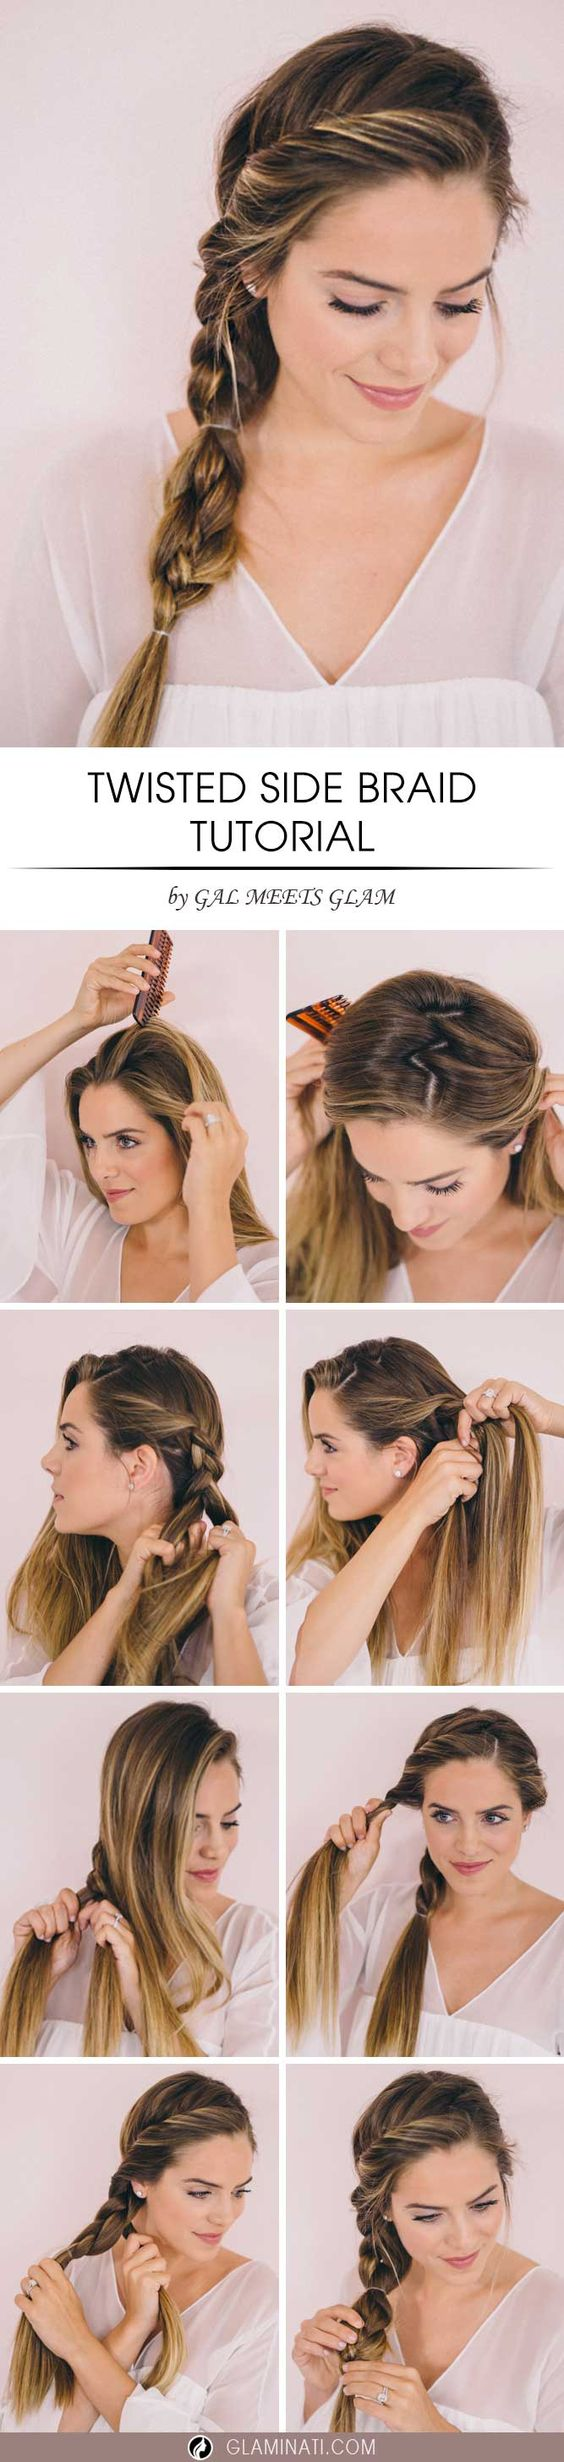 Medium Hairstyles with Twisted Side Braid Medium Hairstyles with Twisted Side Braid